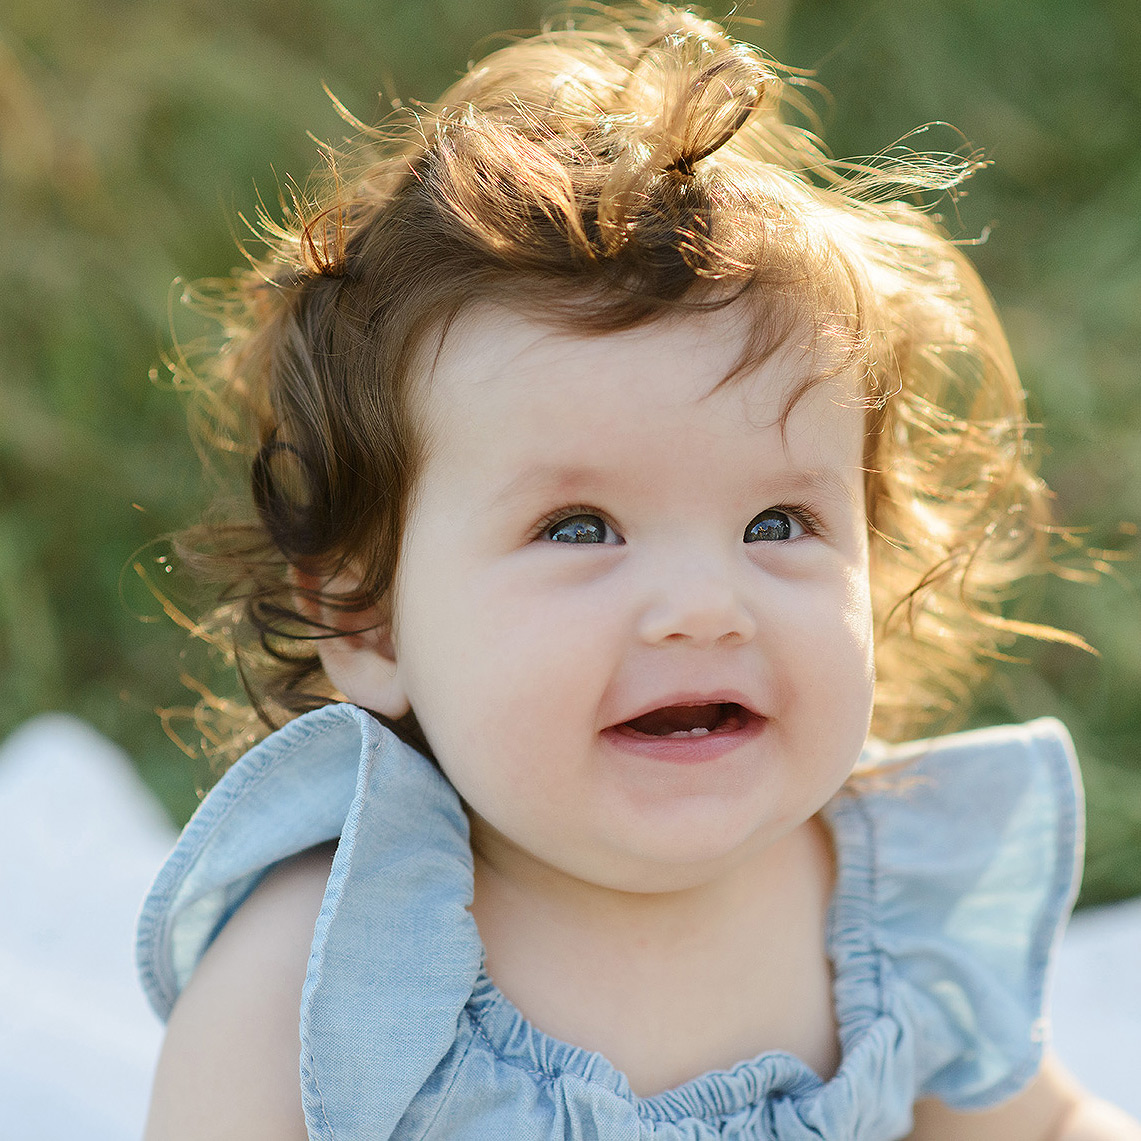 Smiling baby with curly hair in the sun